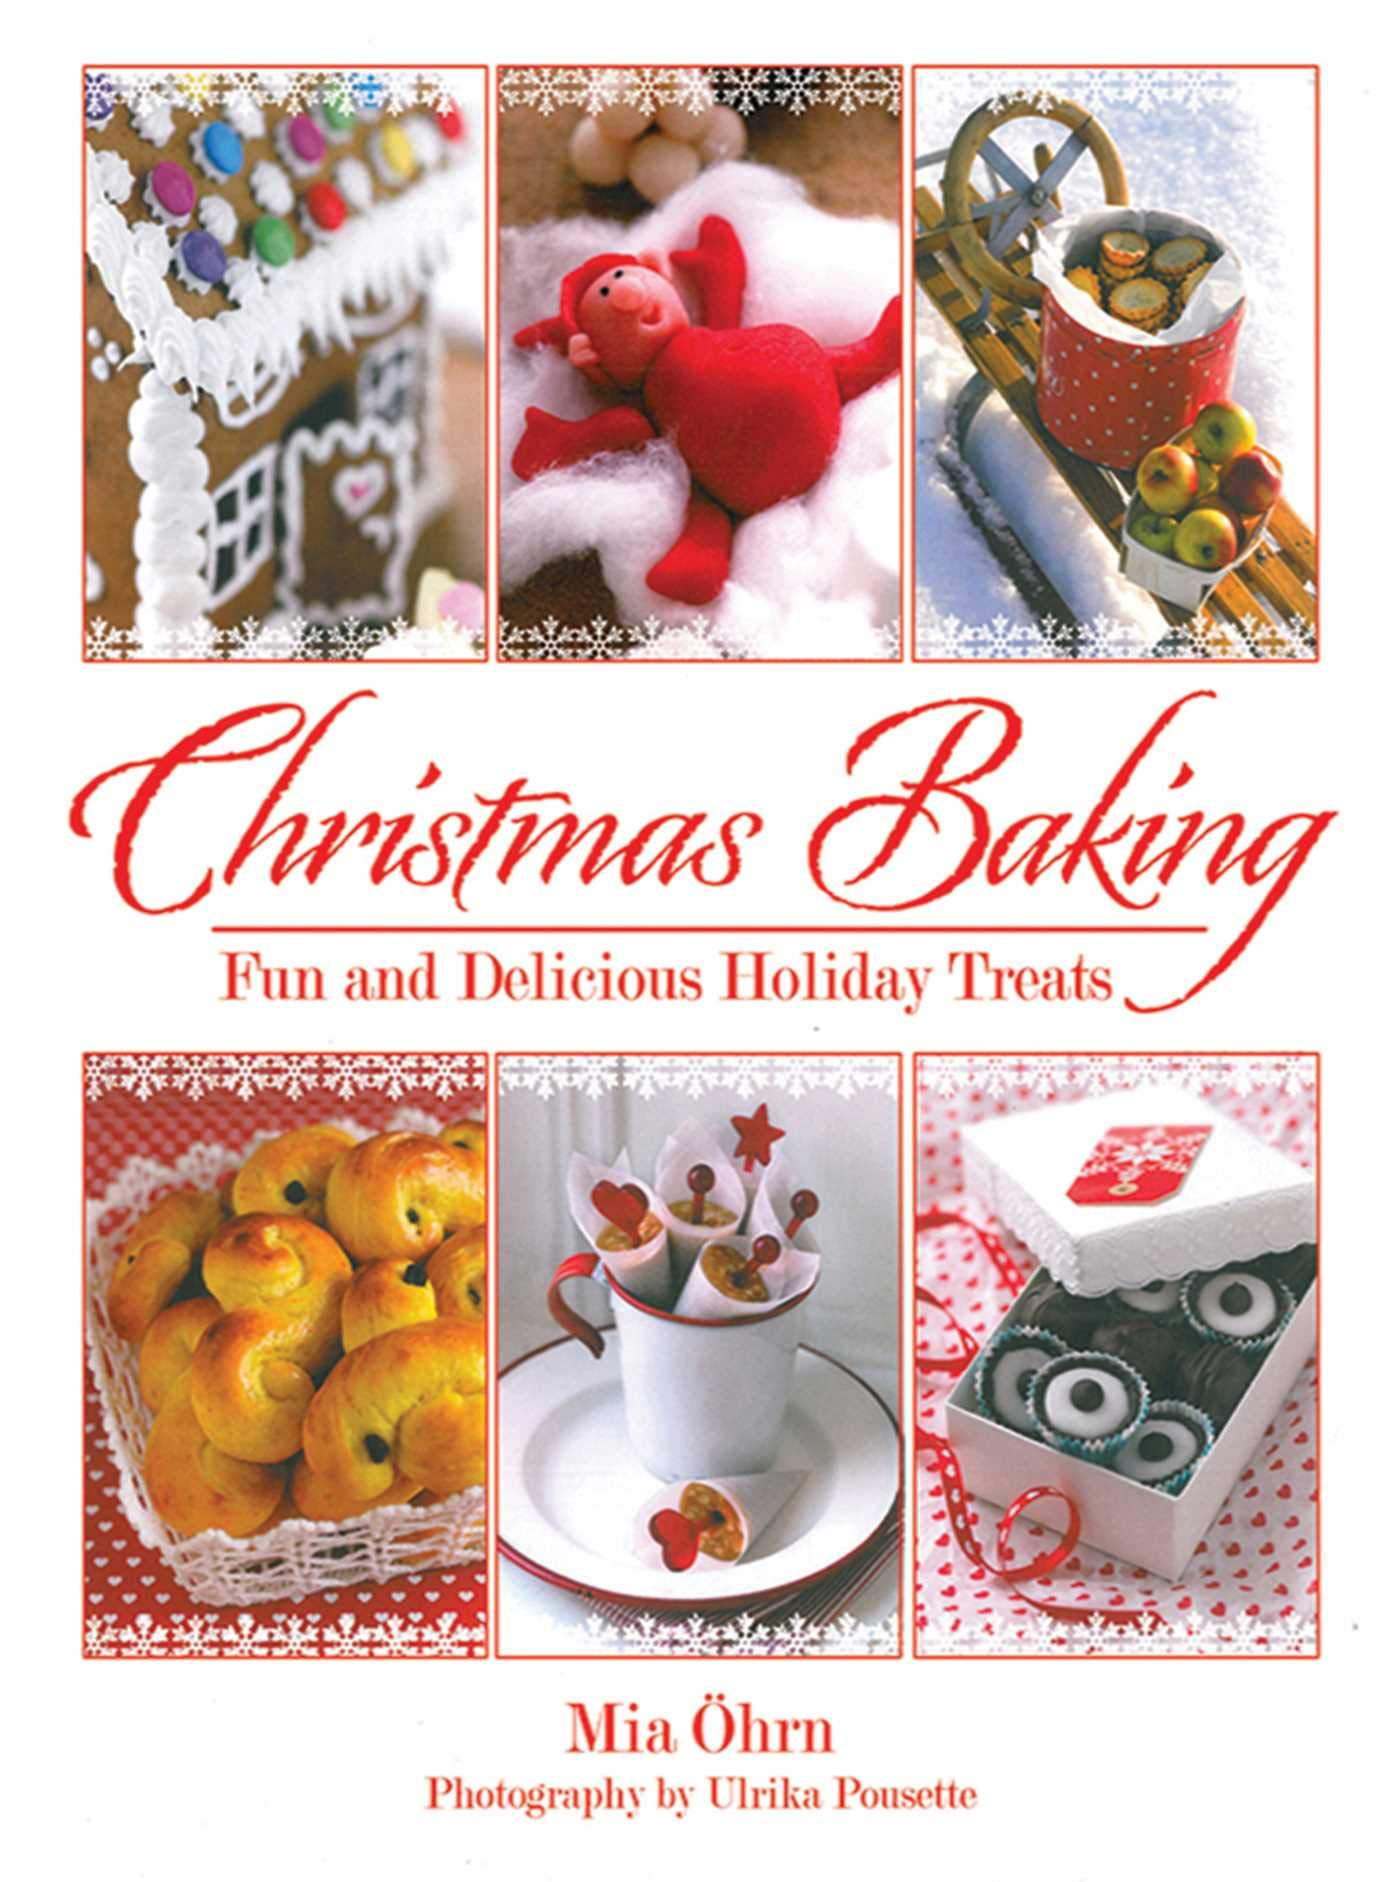 Image result for Christmas Baking by Mia Ohrn""